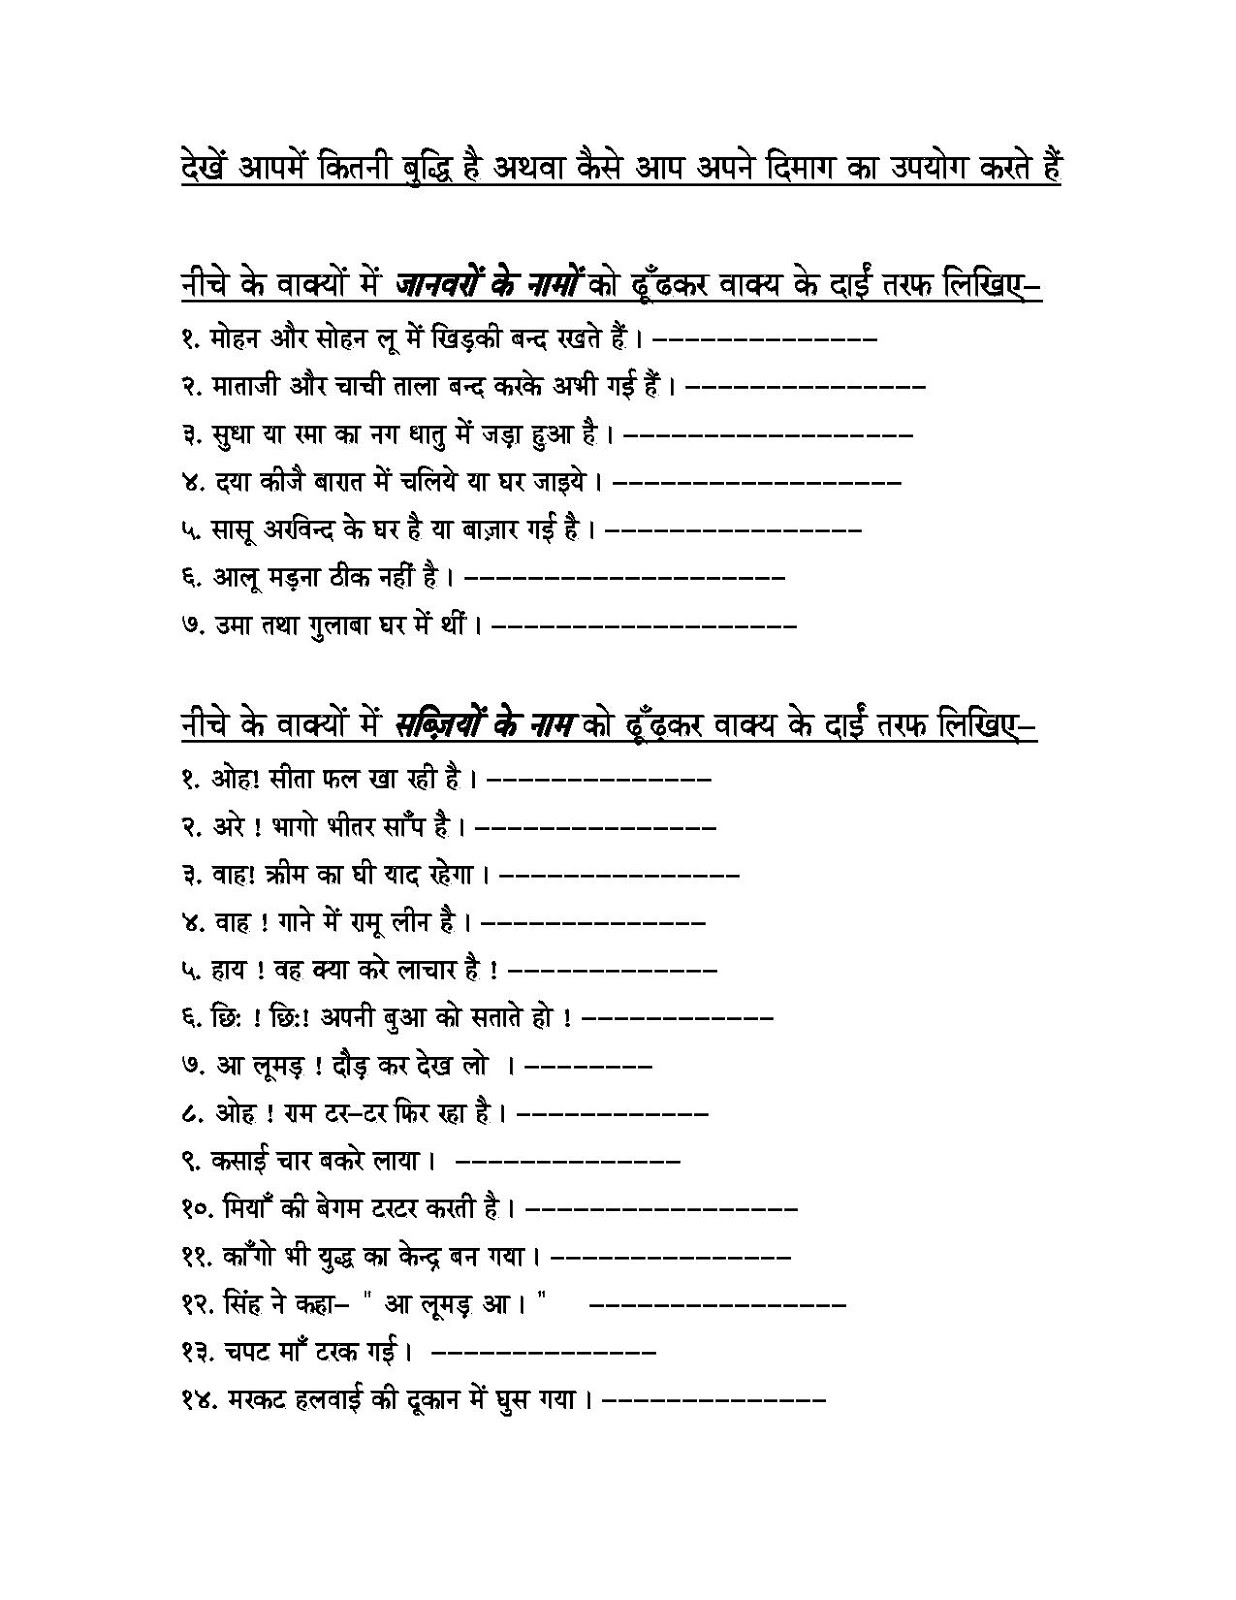 Hindi Grammar Work Sheet Collection For Classes 5 6 7 Amp 8 Collection Of Riddles For Classes 3